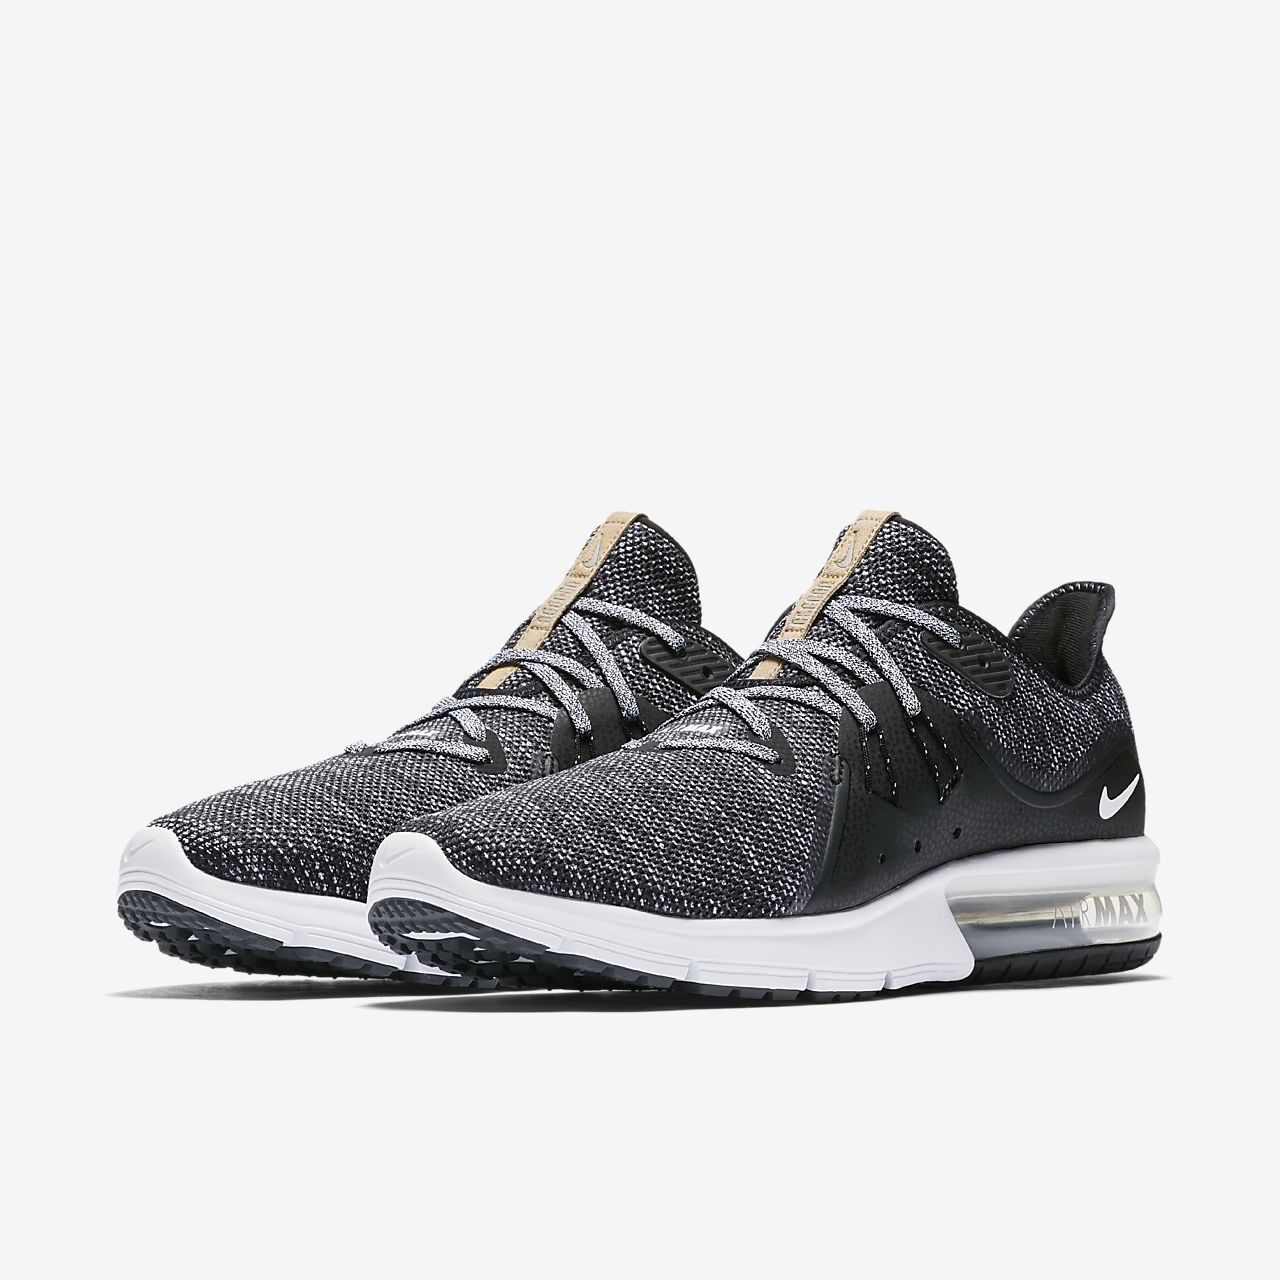 a8b5cc2b1a6 Nike AIR MAX SEQUENT 3 Mens Black White Grey 011 011 011 Athletic Casual  Sneaker Shoes 25c85b